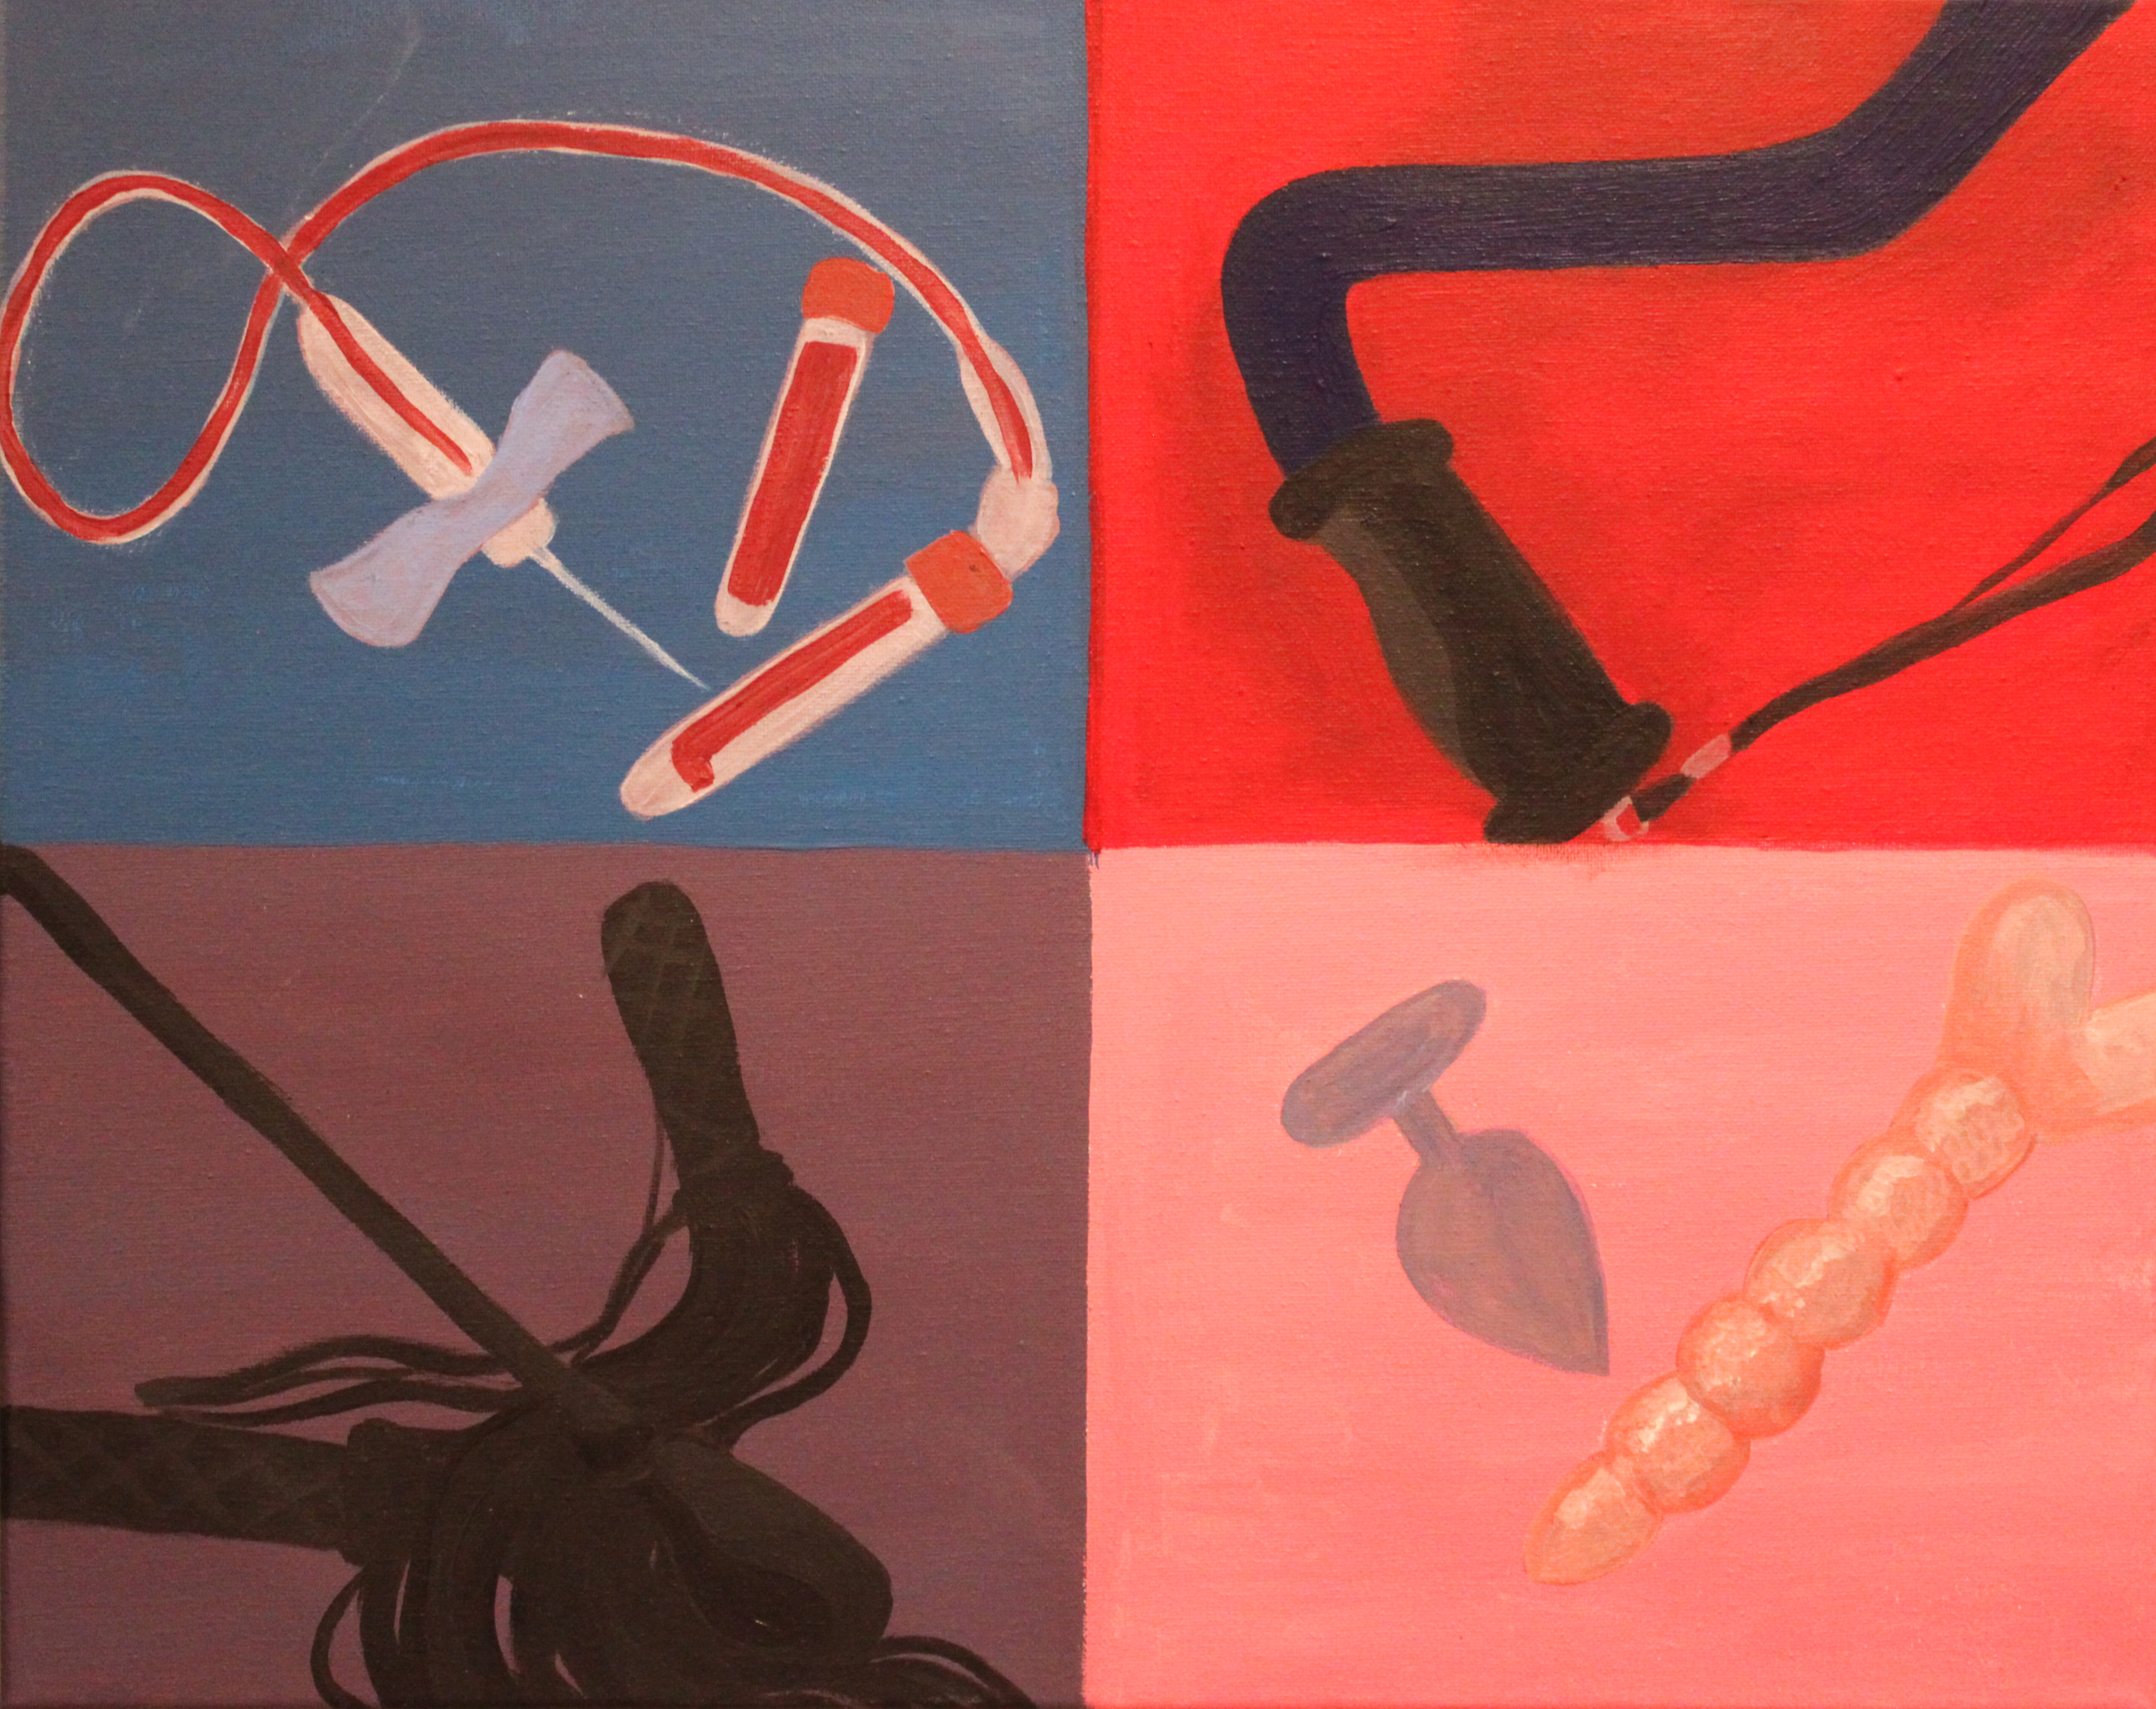 Acrylic painting of four panels, each with an object that relates to disability or BDSM painted on top.